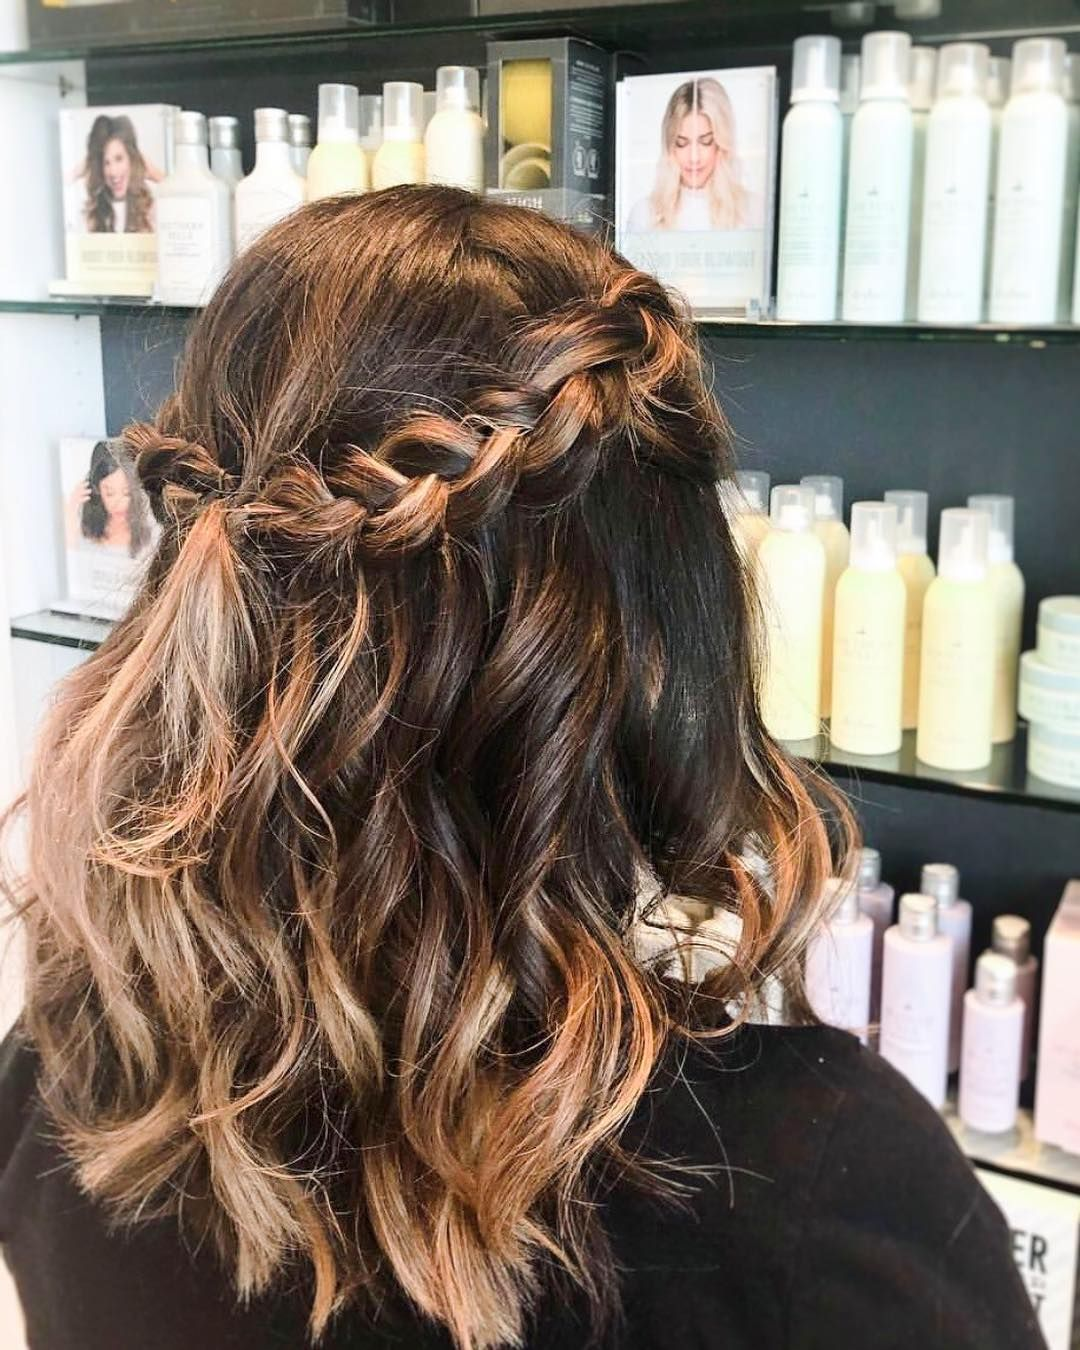 Obsessing Over This Braided Festival Look Cute Hairstyles For Short Hair Short Hair Styles Down Hairstyles